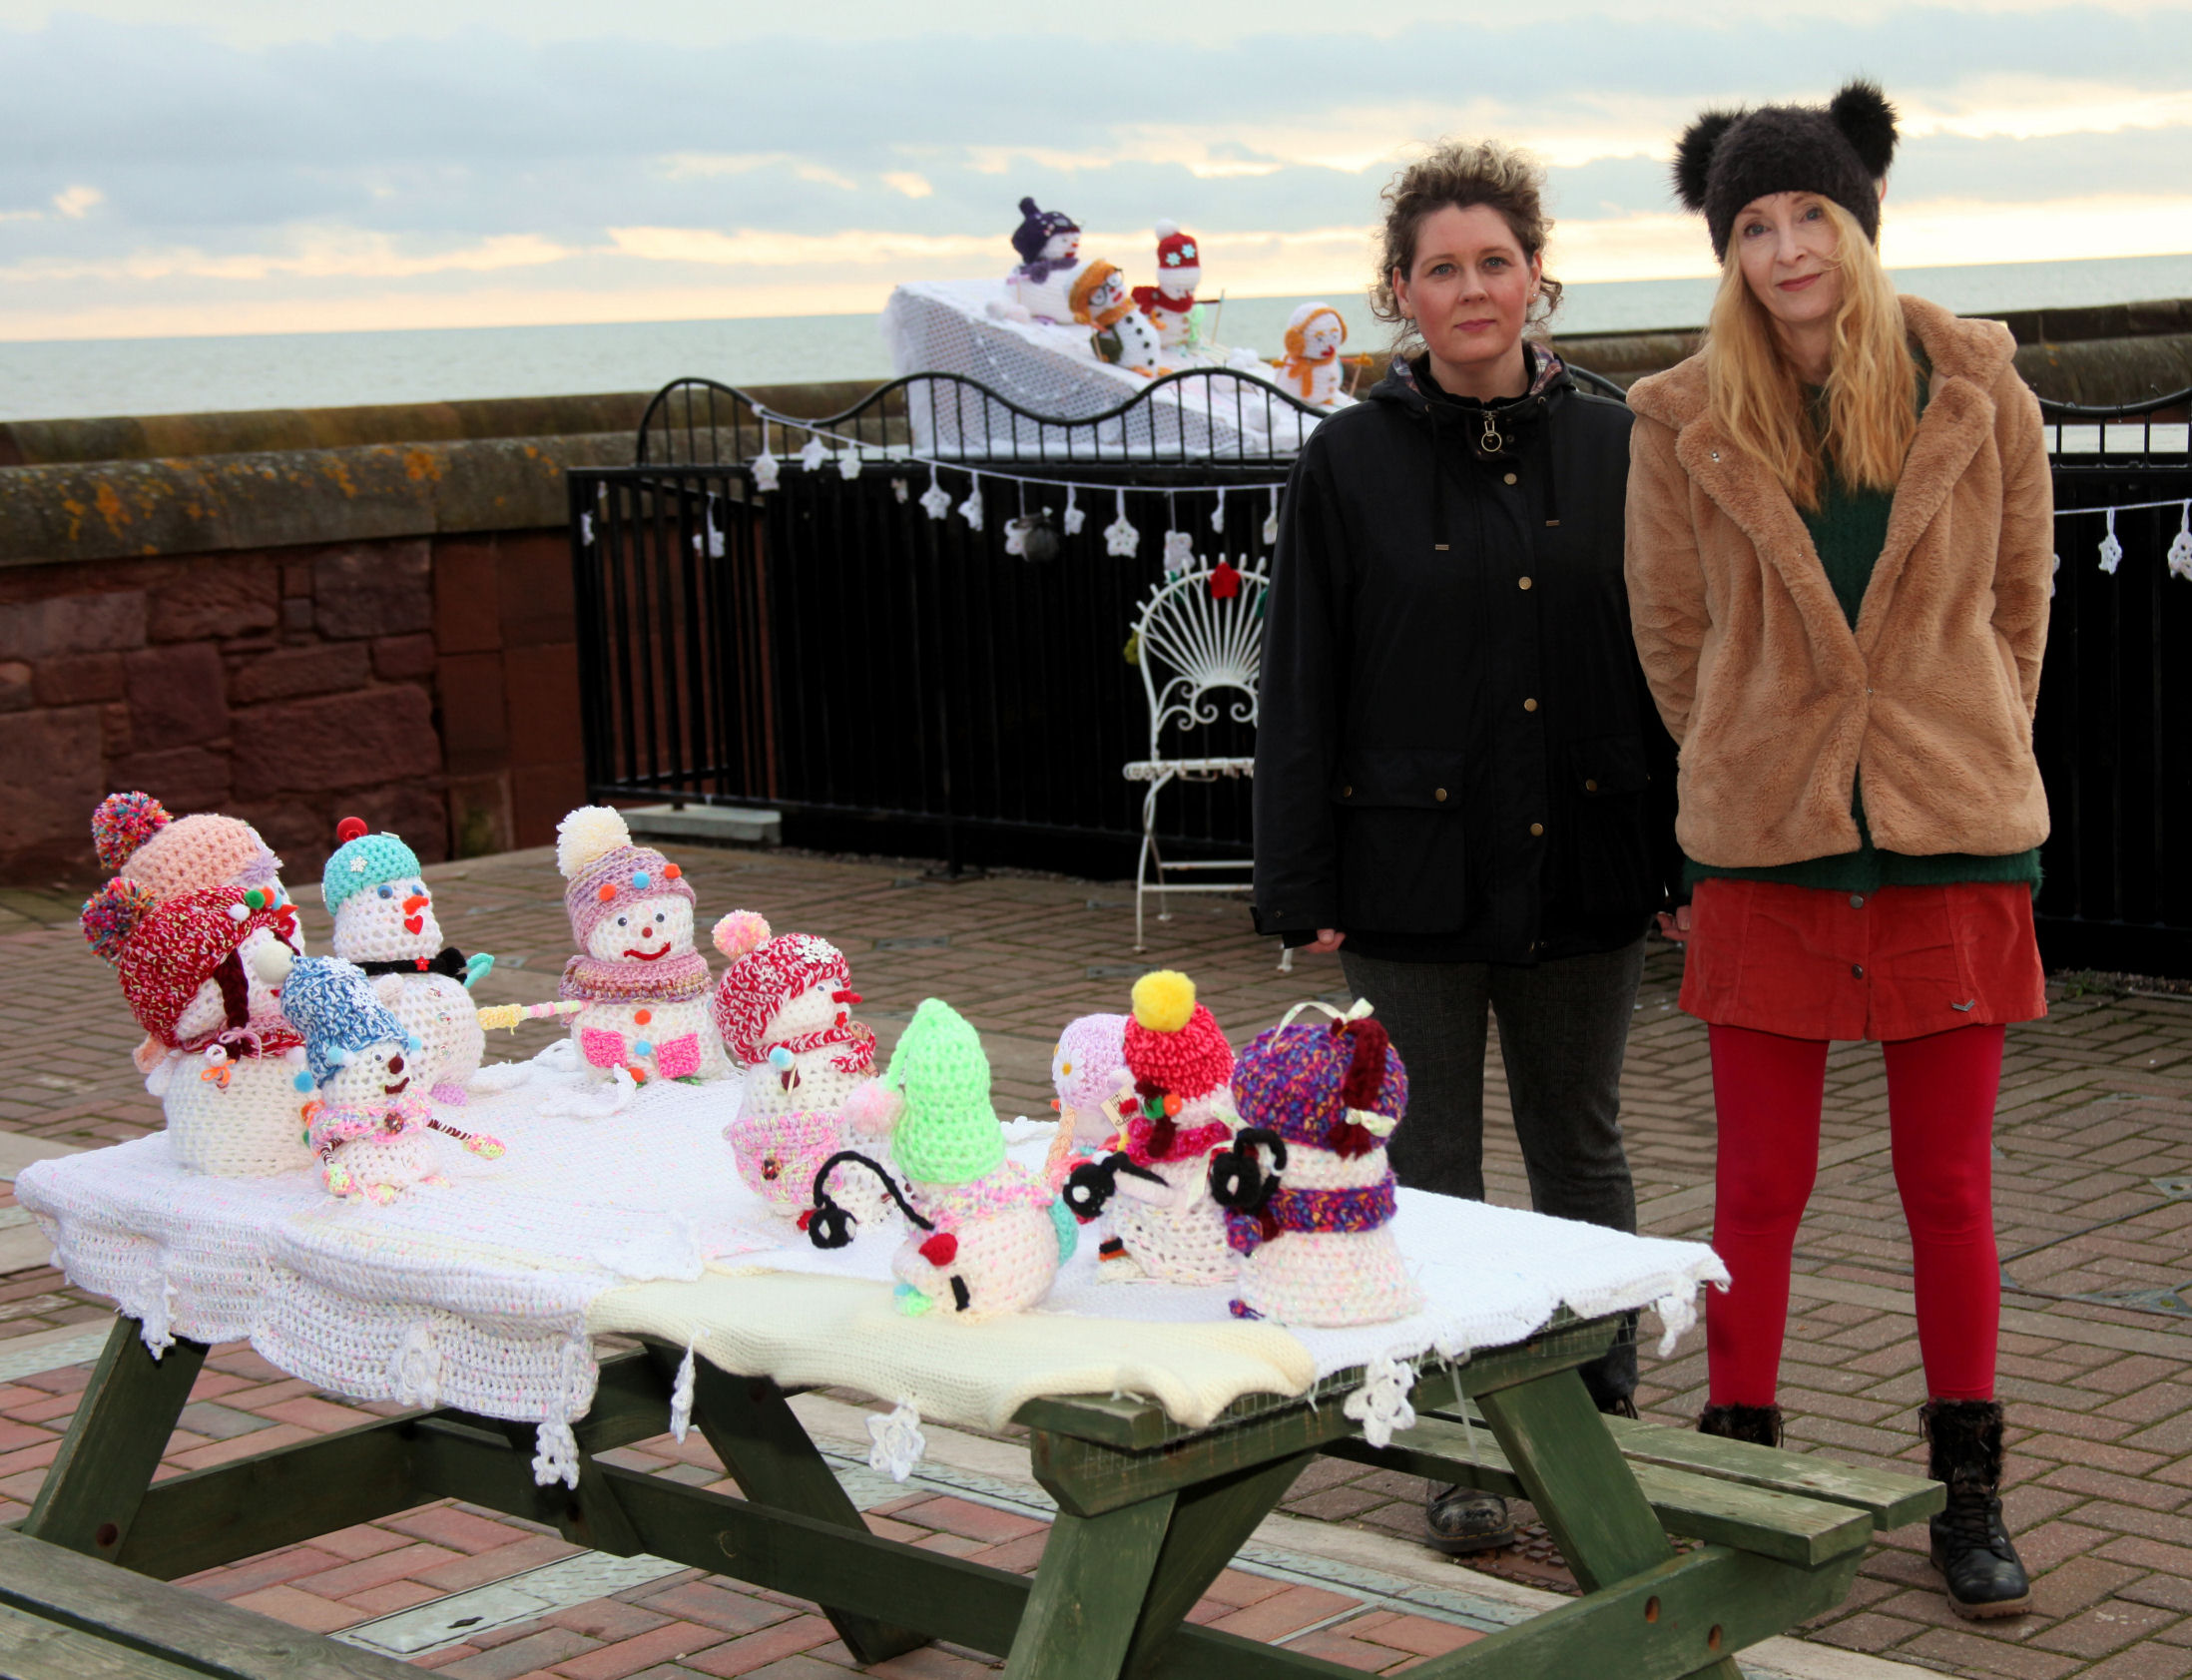 Arbroath councillor Lois Speed and Woolly Workers artists Jill Henderson have been dismayed by the Arbroath theft.